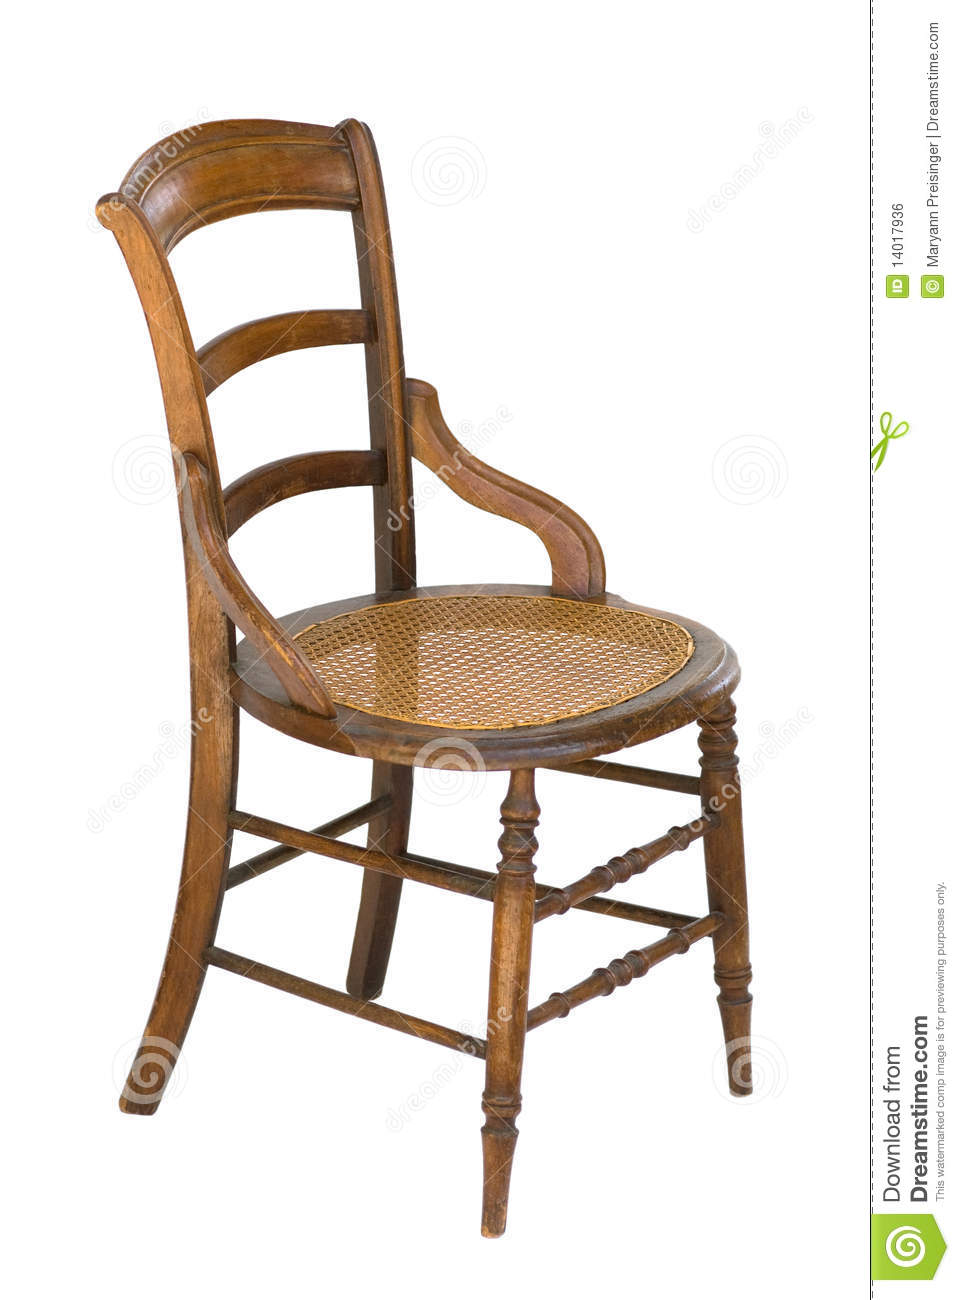 Antique wooden chairs with arms - Cane Seat Antique Wood Vintage Chair Isolated Royalty Free Stock